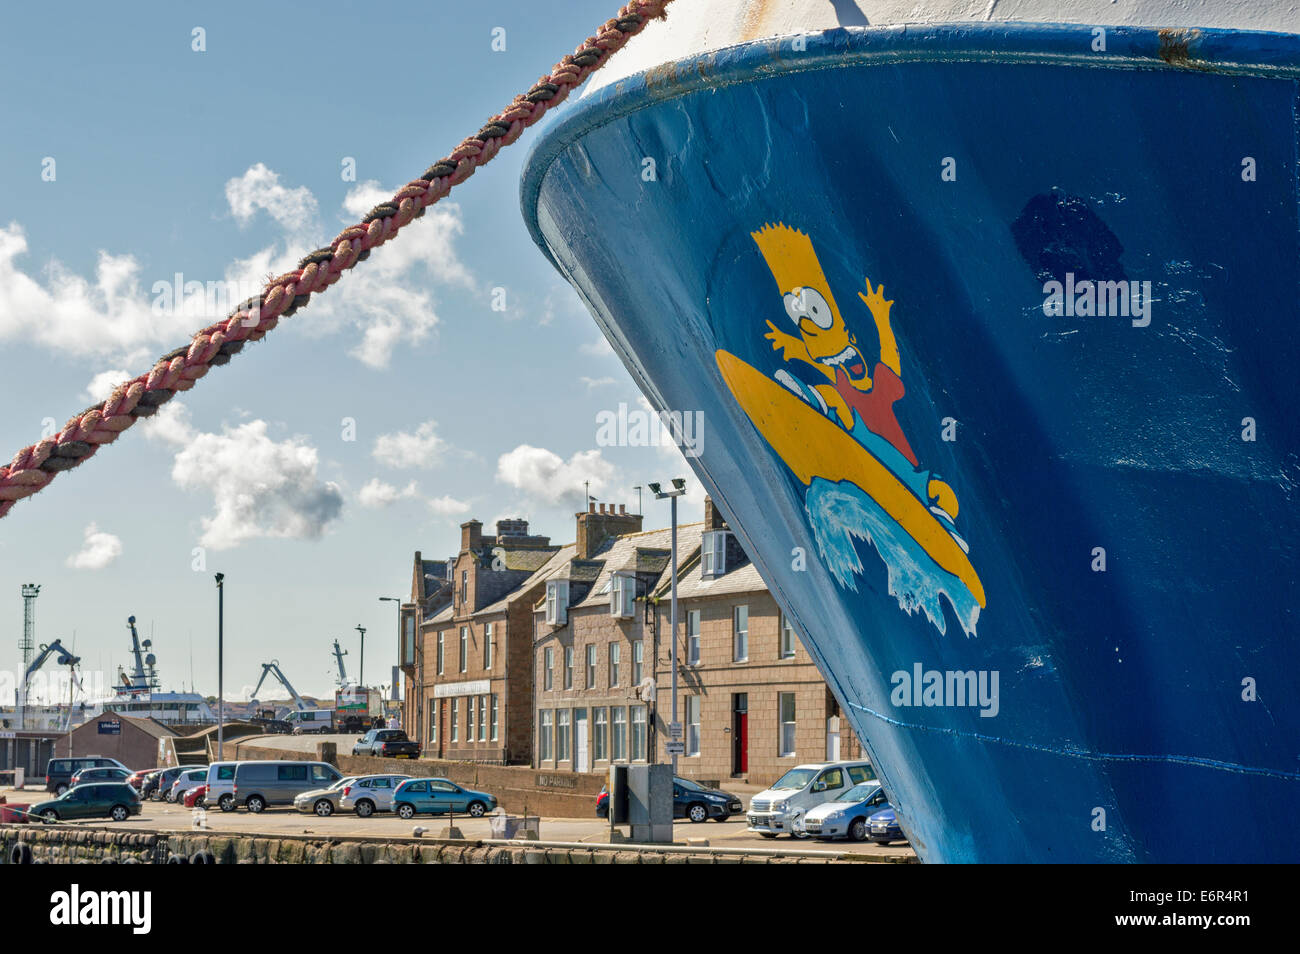 PETERHEAD HARBOUR ABERDEENSHIRE BART SIMPSON AND SURFBOARD ON THE PROW OF A FISHERIES TRAWLER - Stock Image